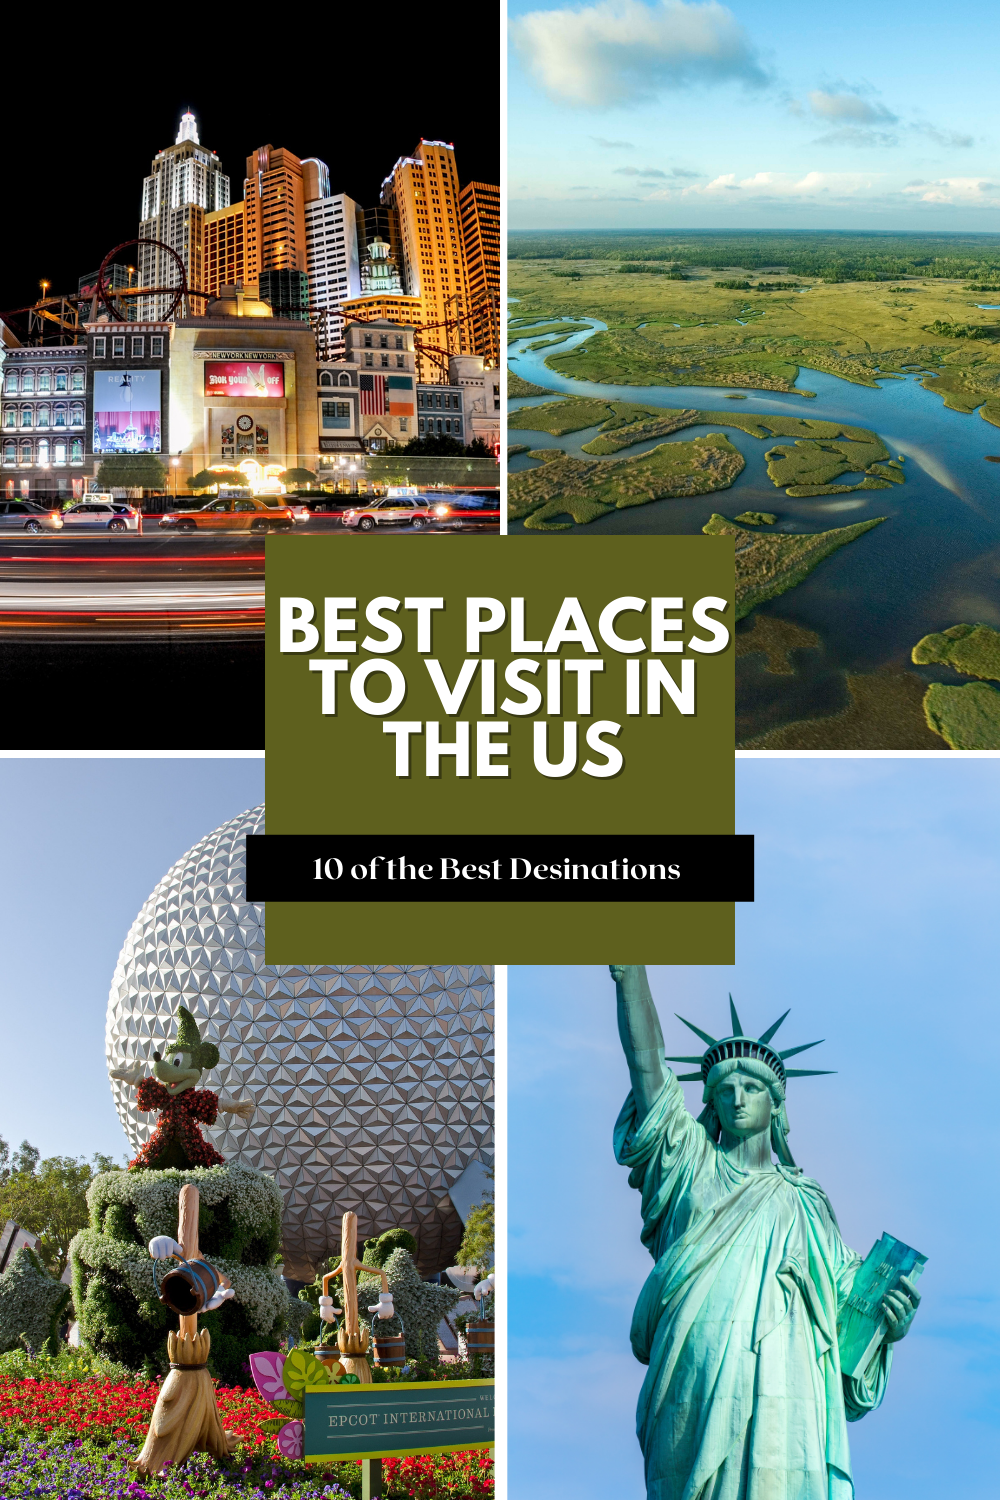 10 of the best places to visit in the US that highlight the US's history, natural beauty, and fun filled attractions